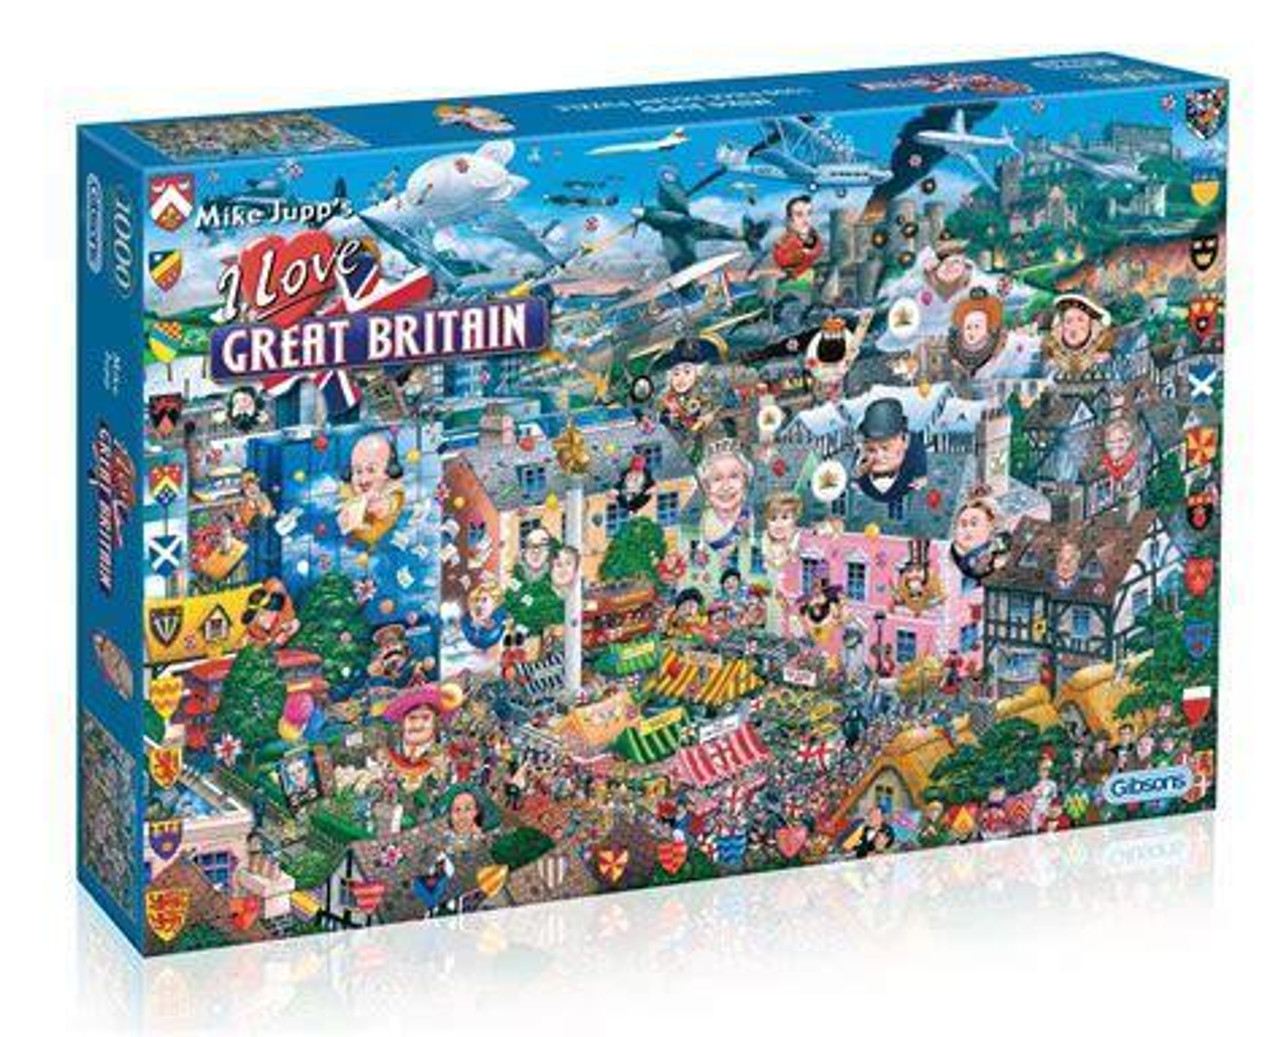 Gibsons - I Love Great Britain 1000 Piece Jigsaw Puzzle